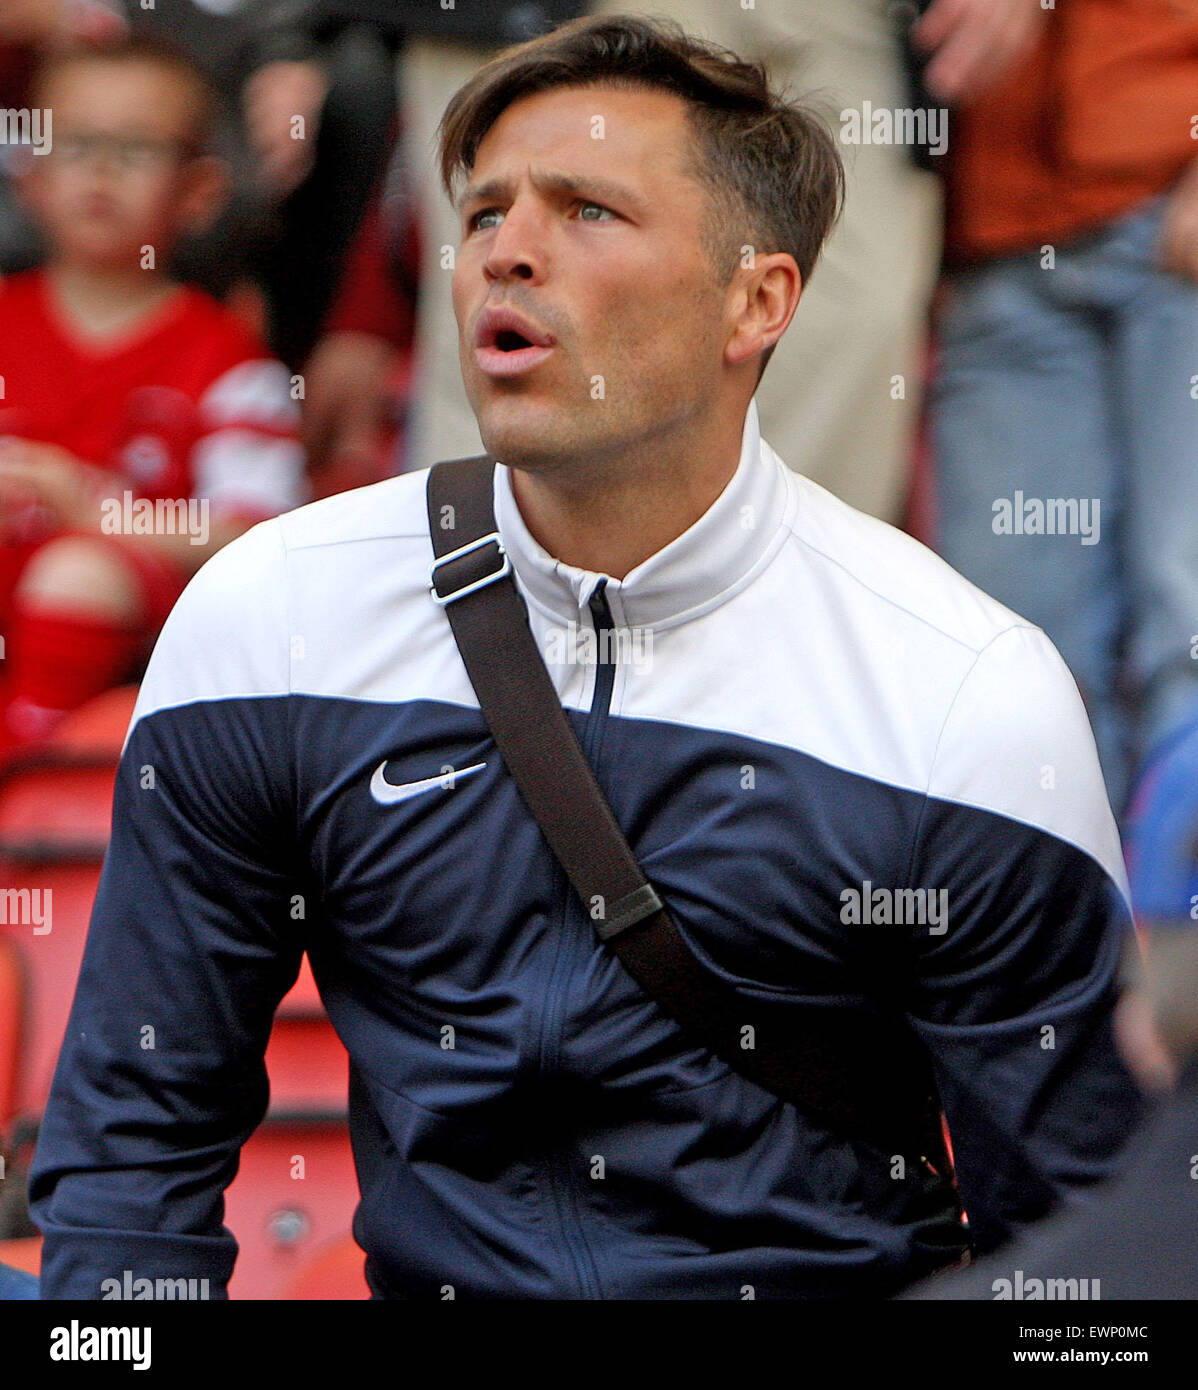 Towie Star Mark Wright Watches His Brother Play For Leyton Orient Stock Photo Alamy